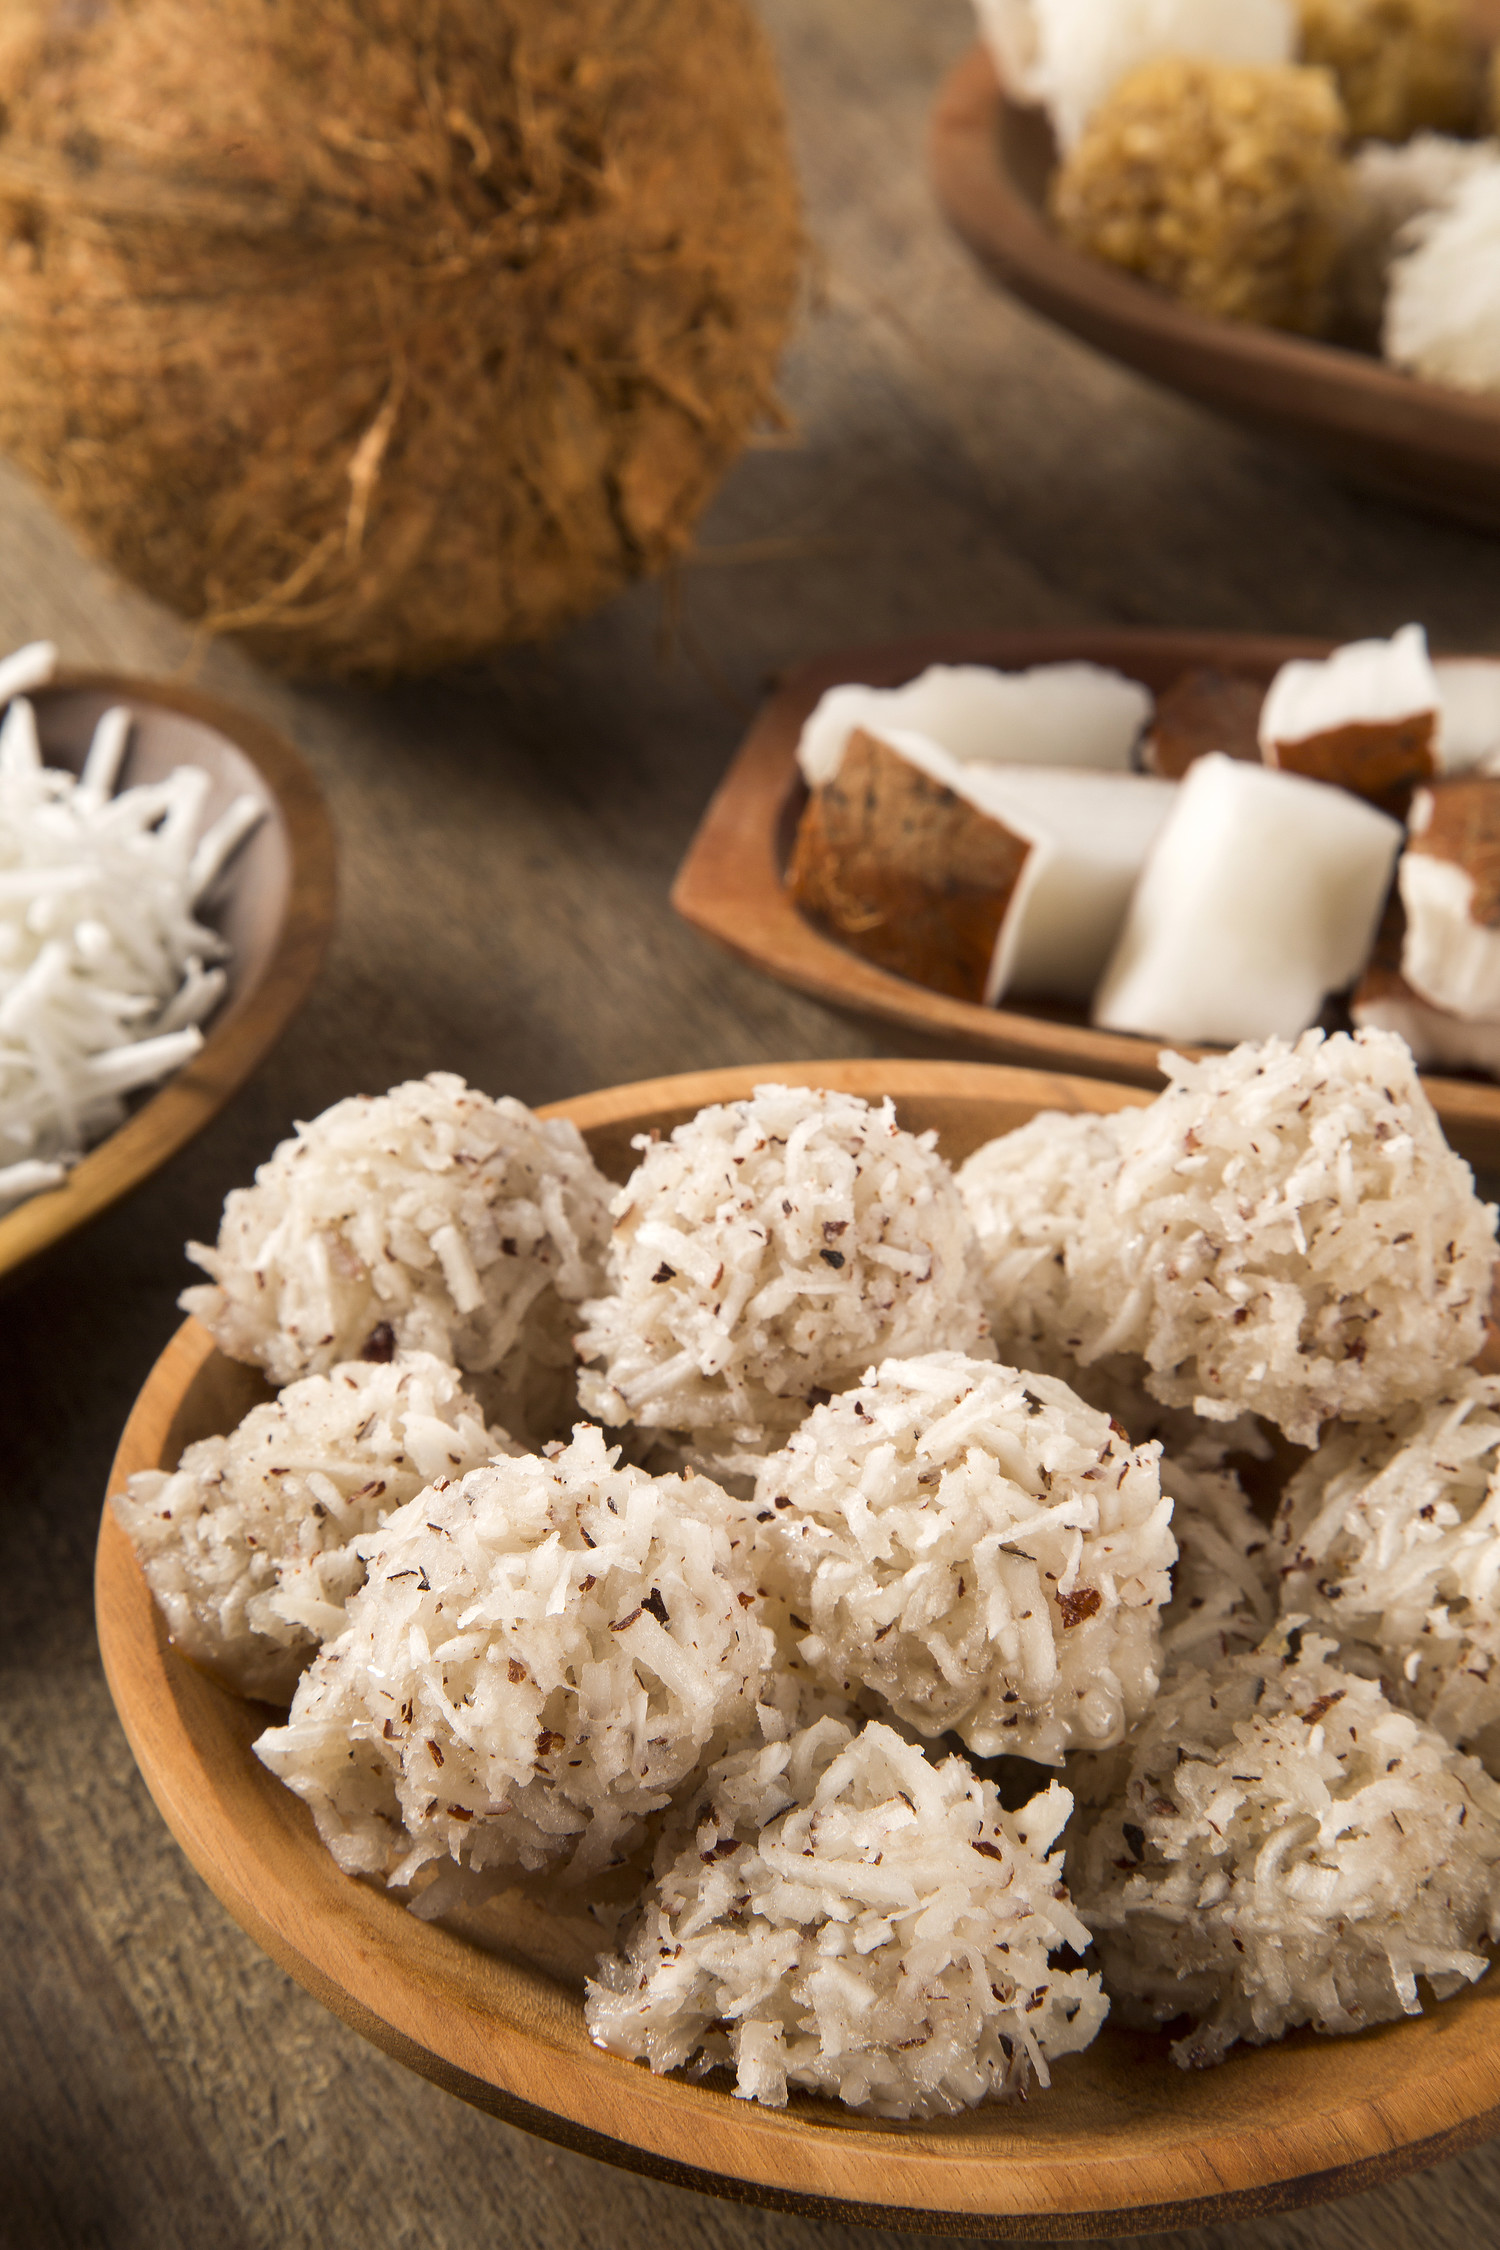 Peruvian desserts, cocadas a traditional coconut dessert sold usually on the streets made of grated coconut and white or brown sugar